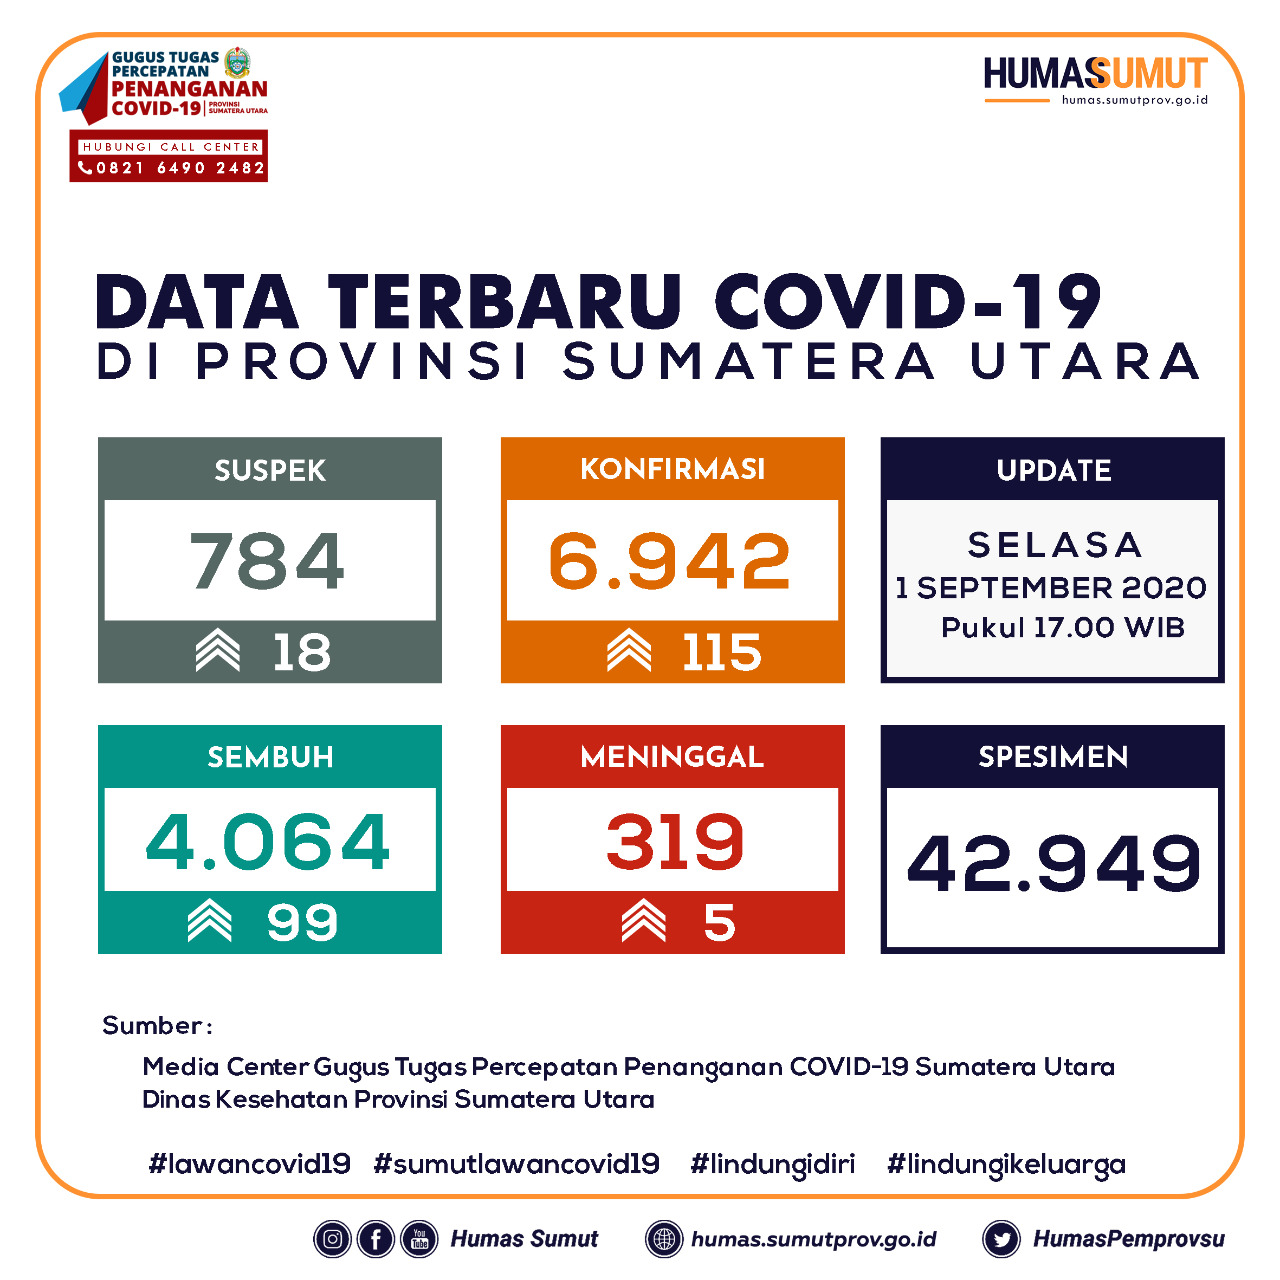 Update Data Covid-19 di Sumatera Utara 1 September 2020